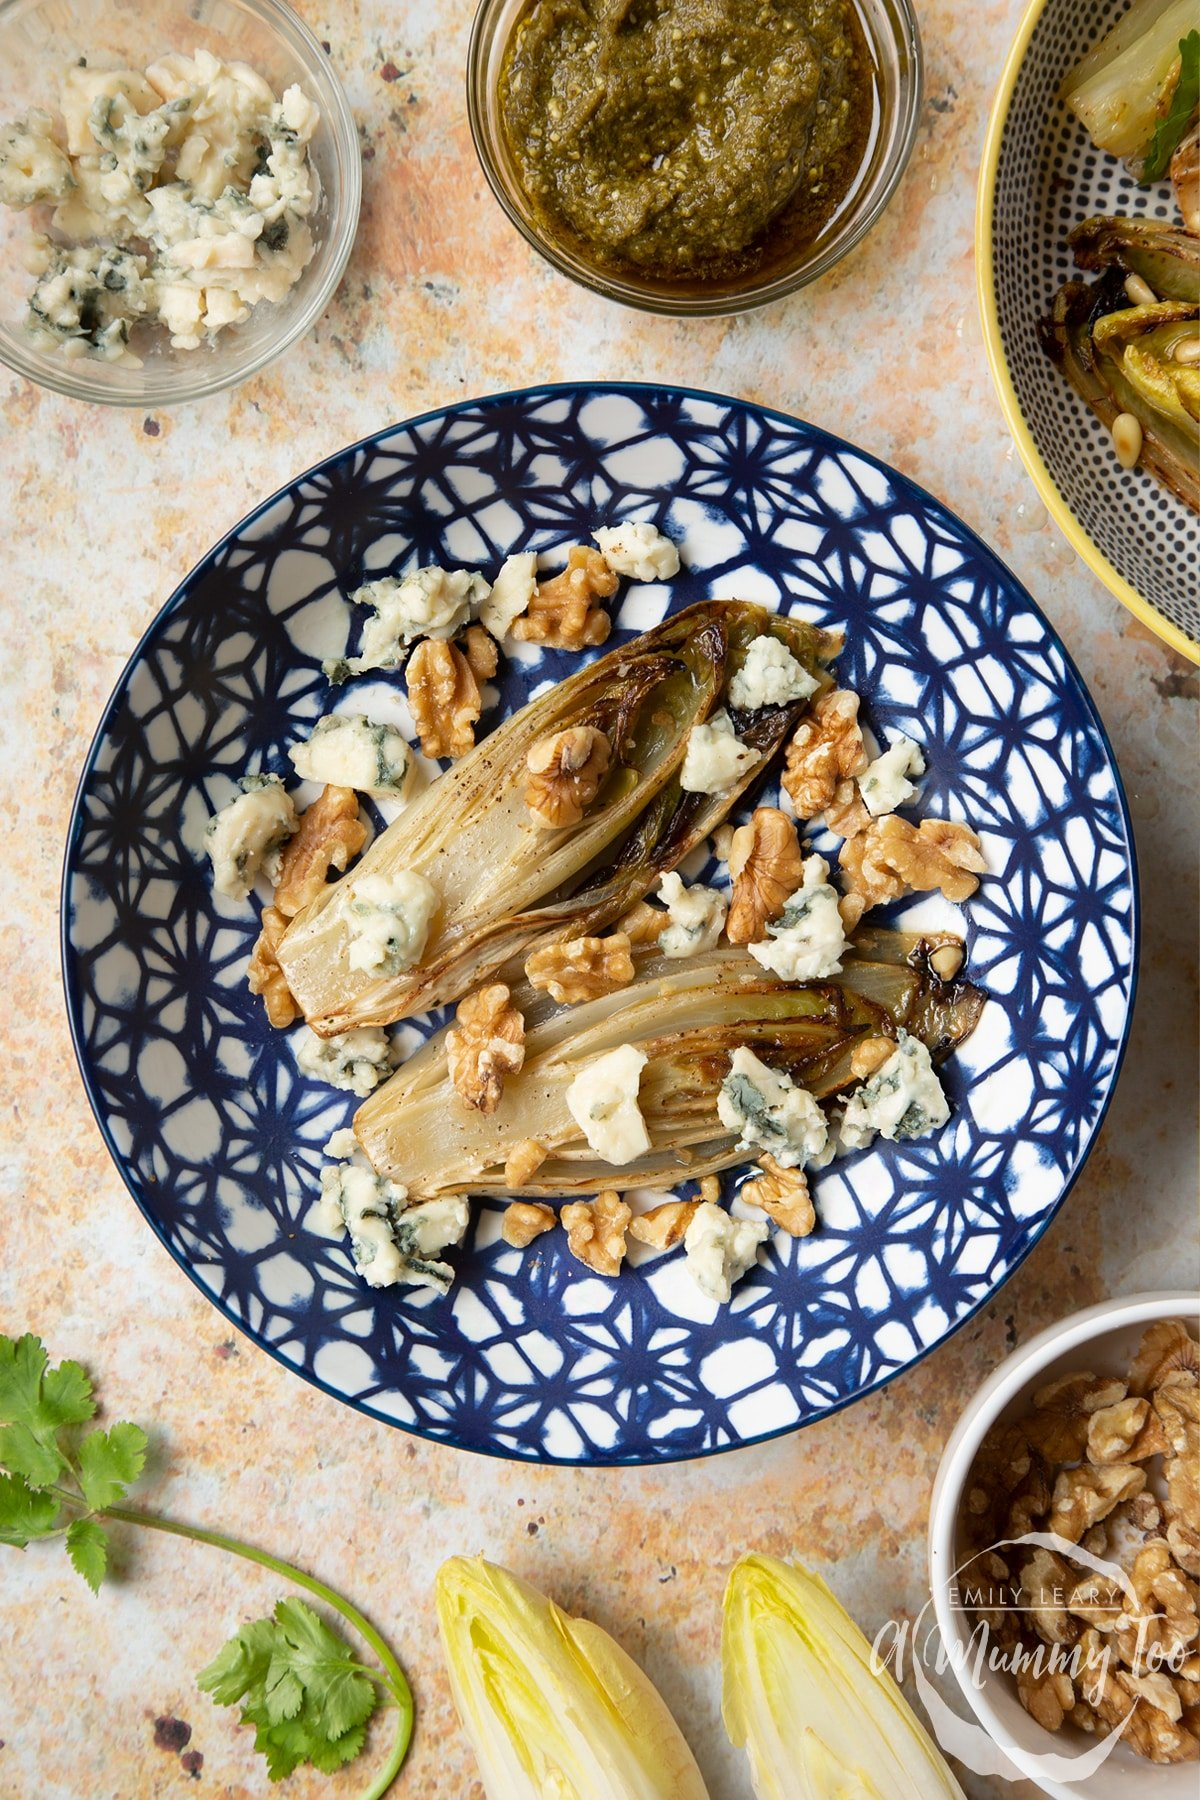 Braised chicory in a bowl with blue cheese and walnuts.